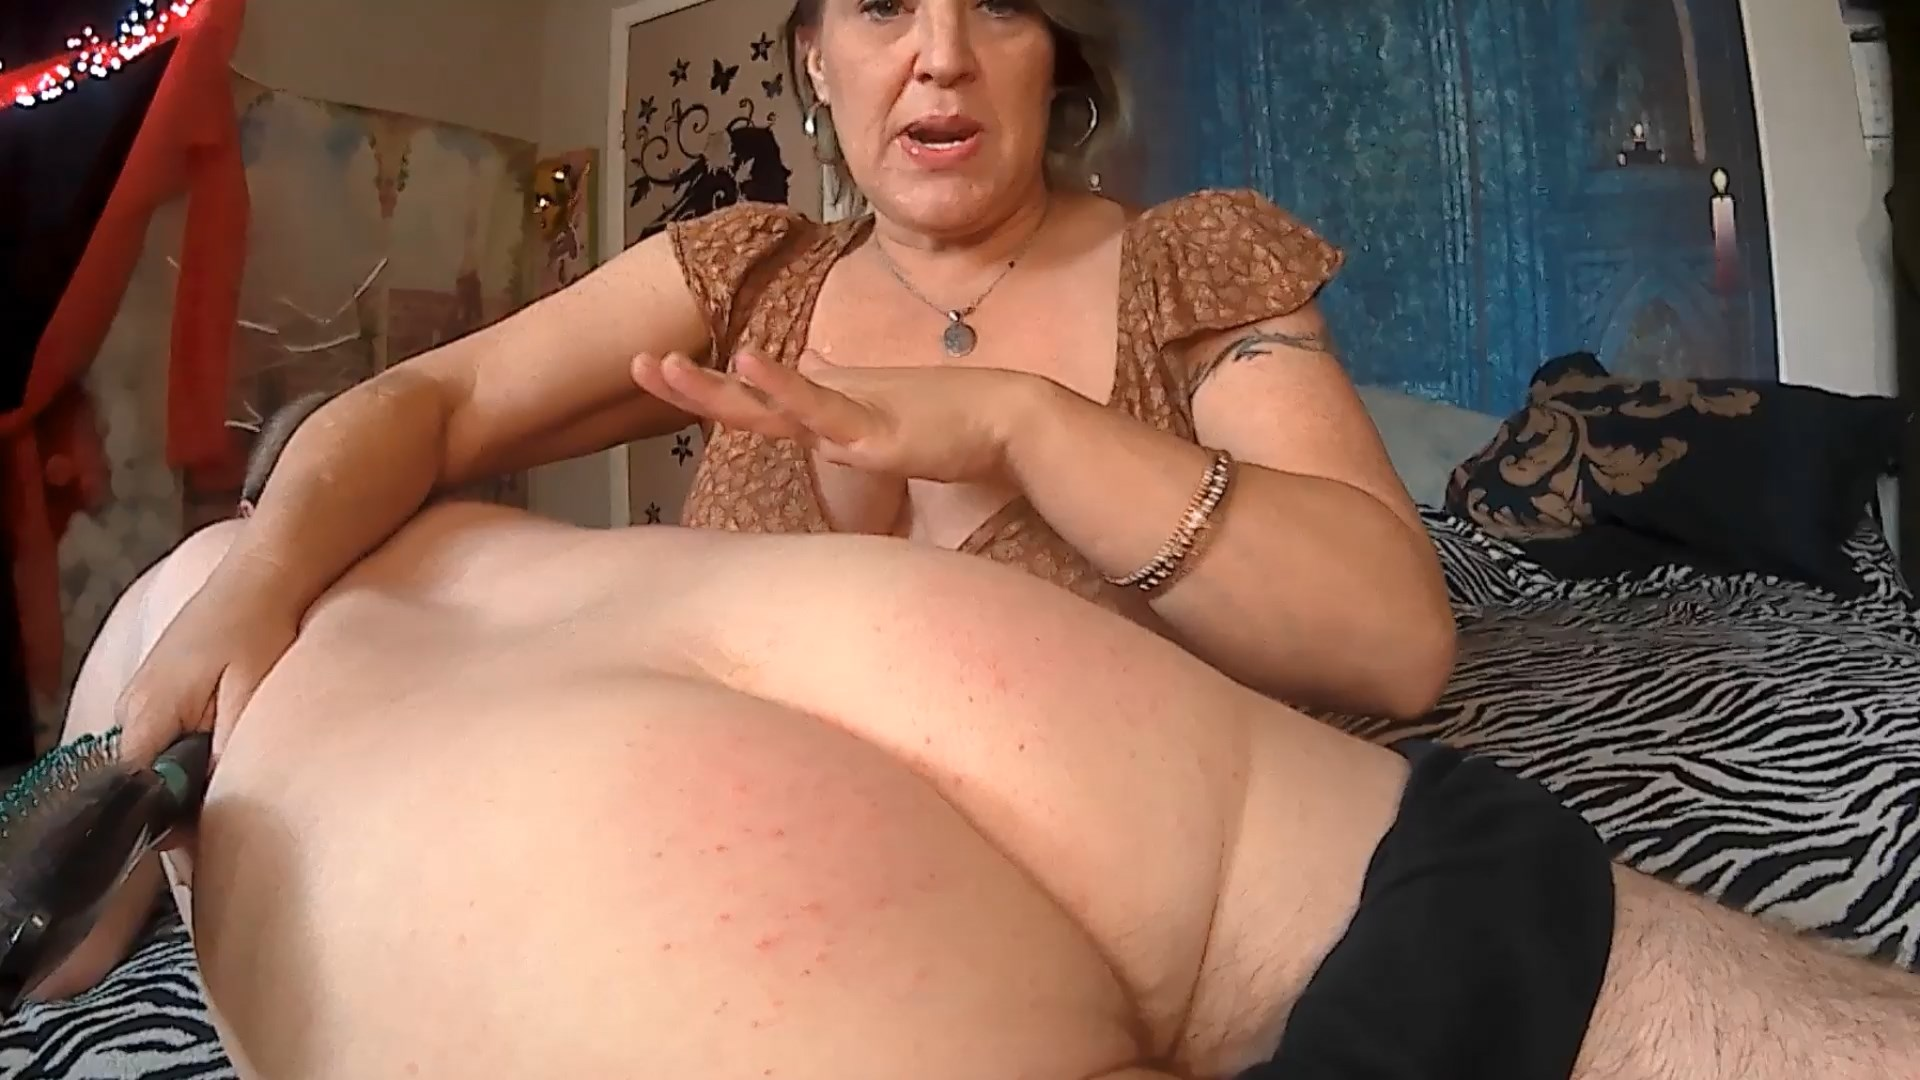 MOMMY SPANKS HER NAUGHTY SON - Naughty Nikki 777